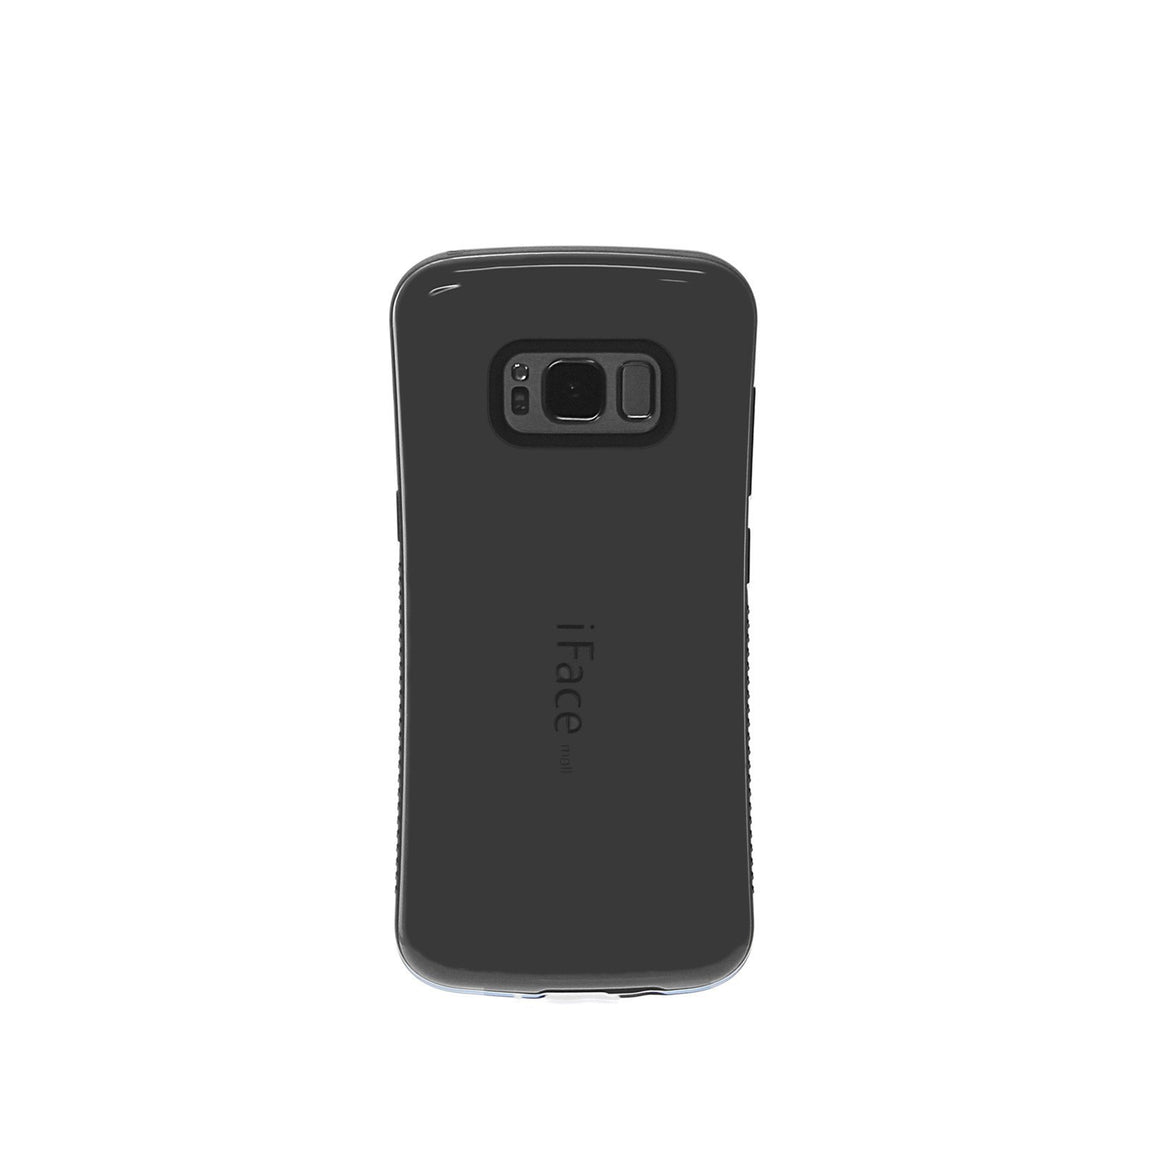 Samsung iFace Heavy Duty Bumper Shockproof Hard Case - caseoftheday.com.au